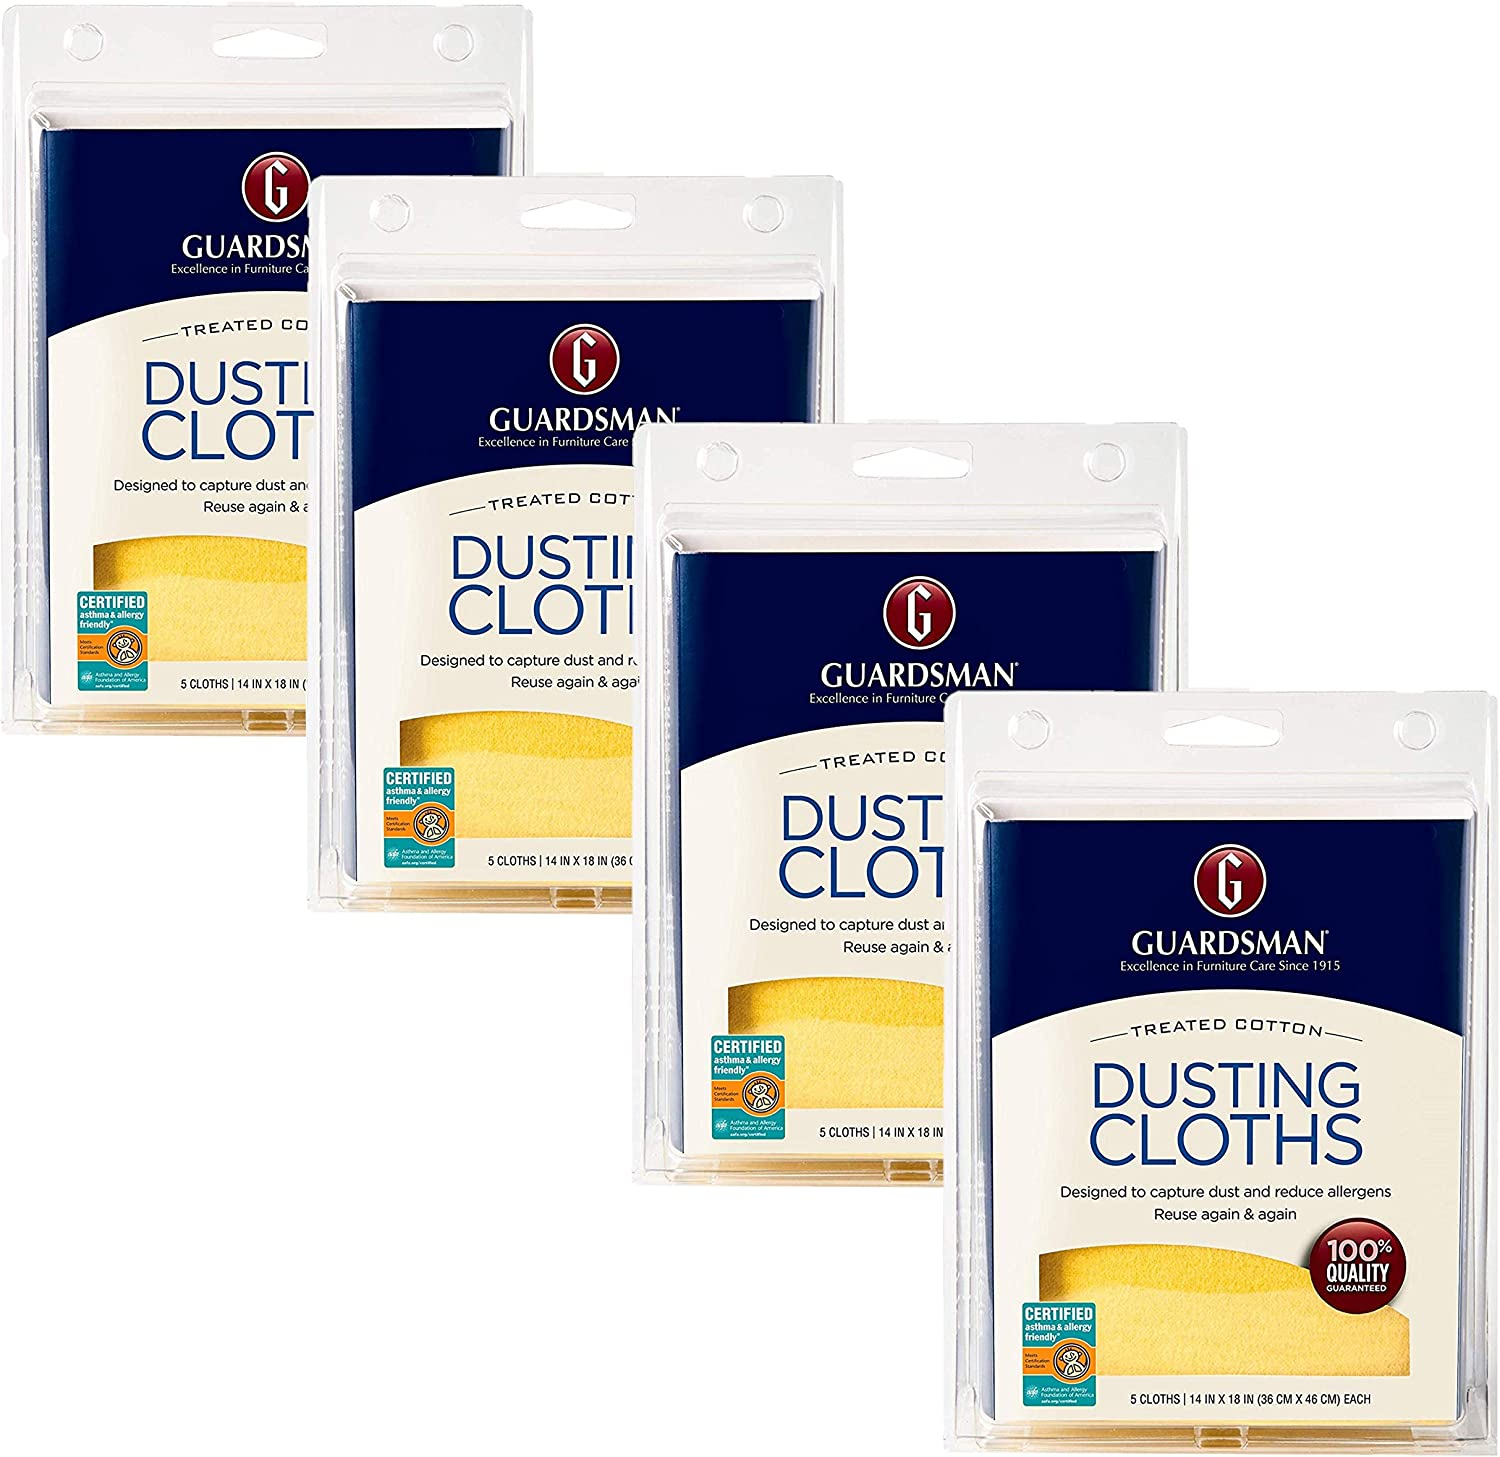 Guardsman Wood Furniture Dusting Cloths - 5 Pre-Treated Cloth - Captures 2X The Dust of a Regular Cloth, Specially Treated, No Sprays or Odors - 462700, Pack of 4